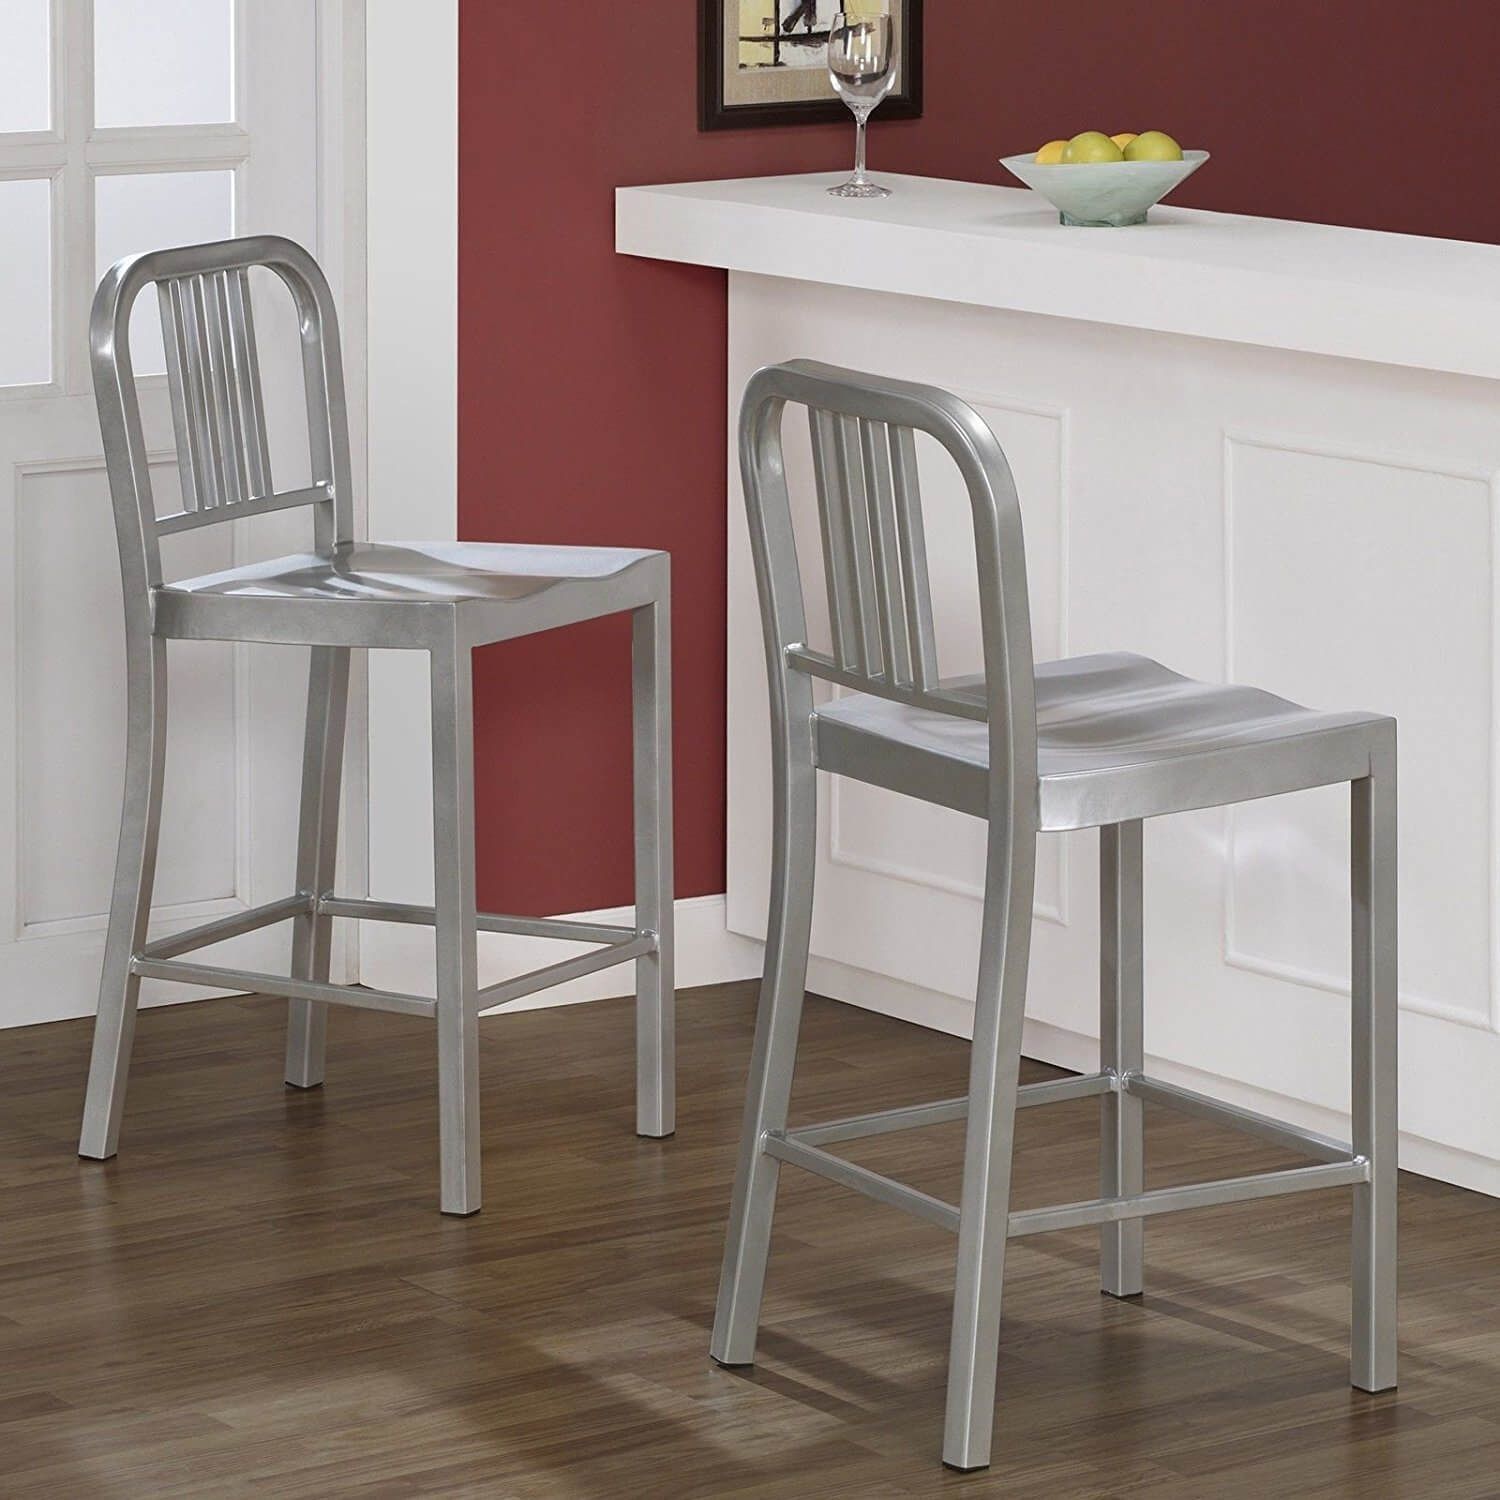 Metal Counter Stools